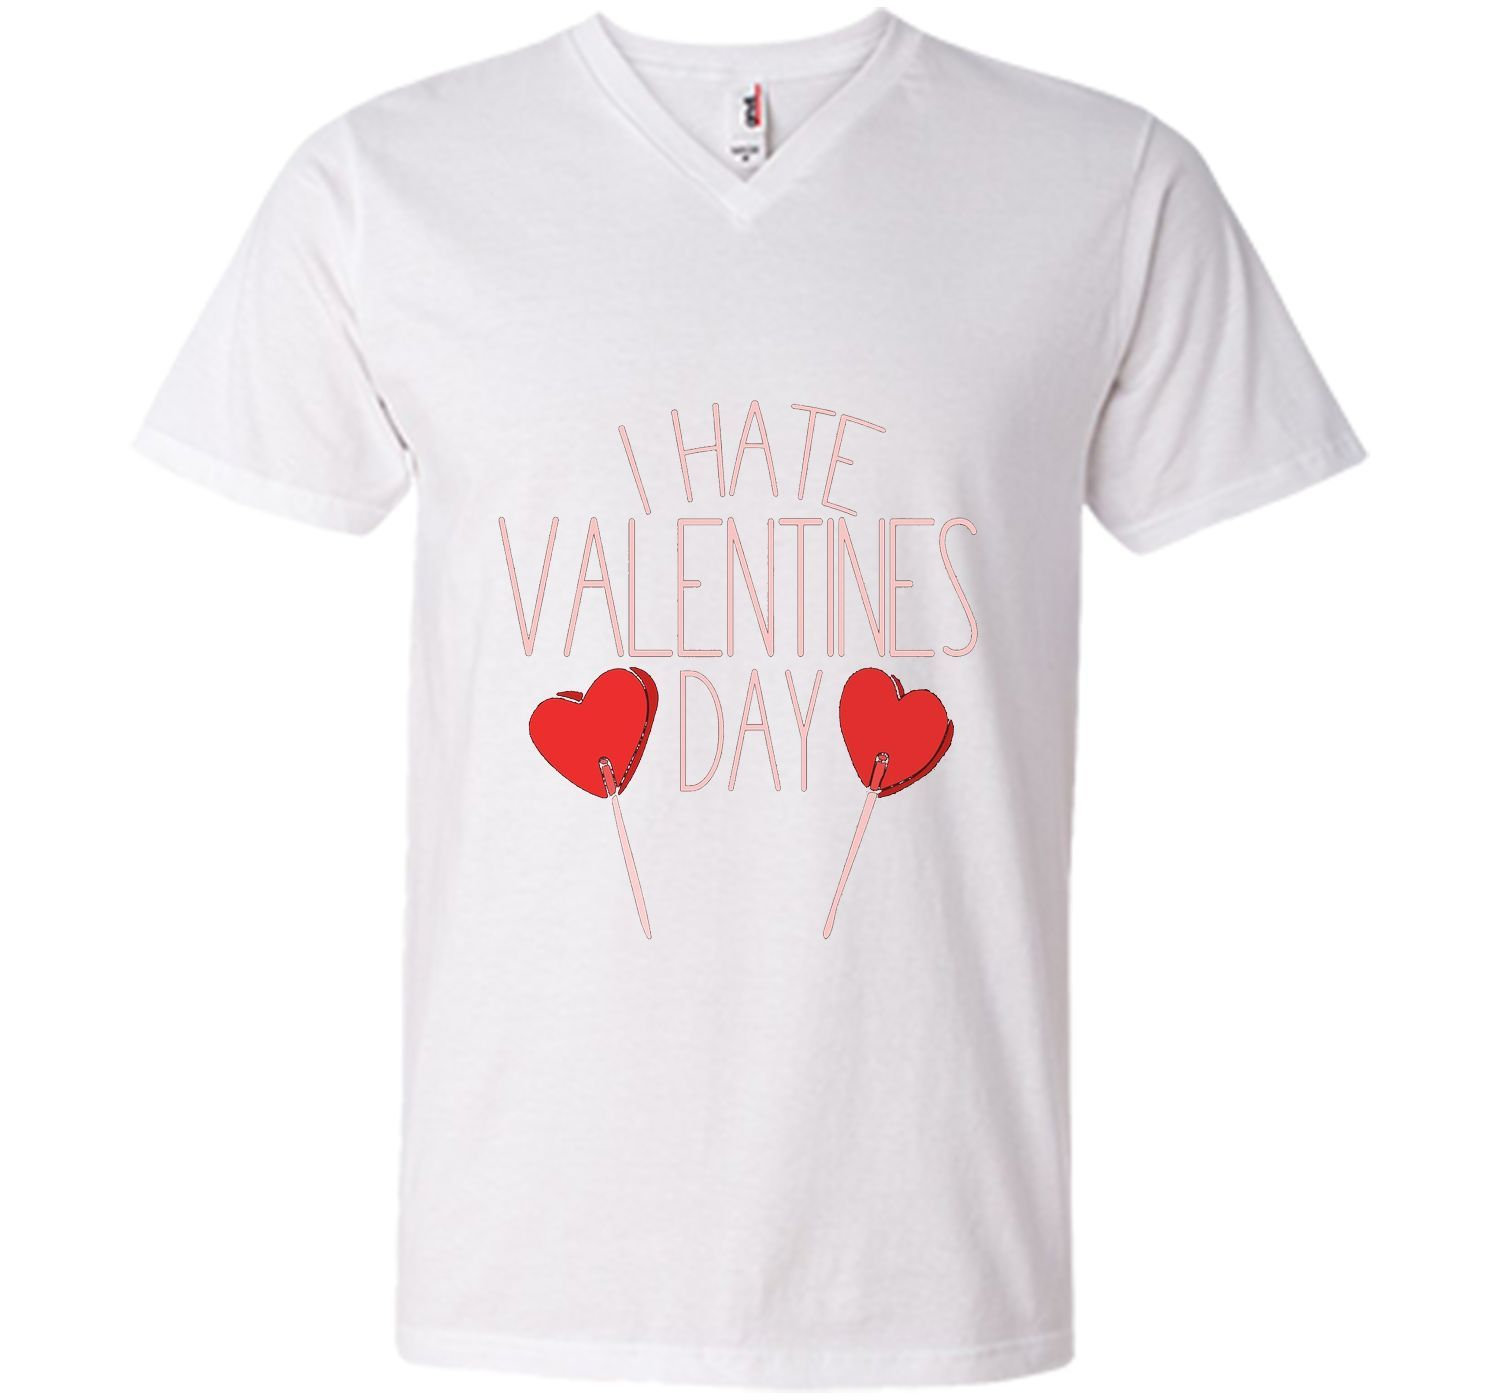 i hate valentines day shirt funny anti valentines day tee - Anti Valentines Day Shirts